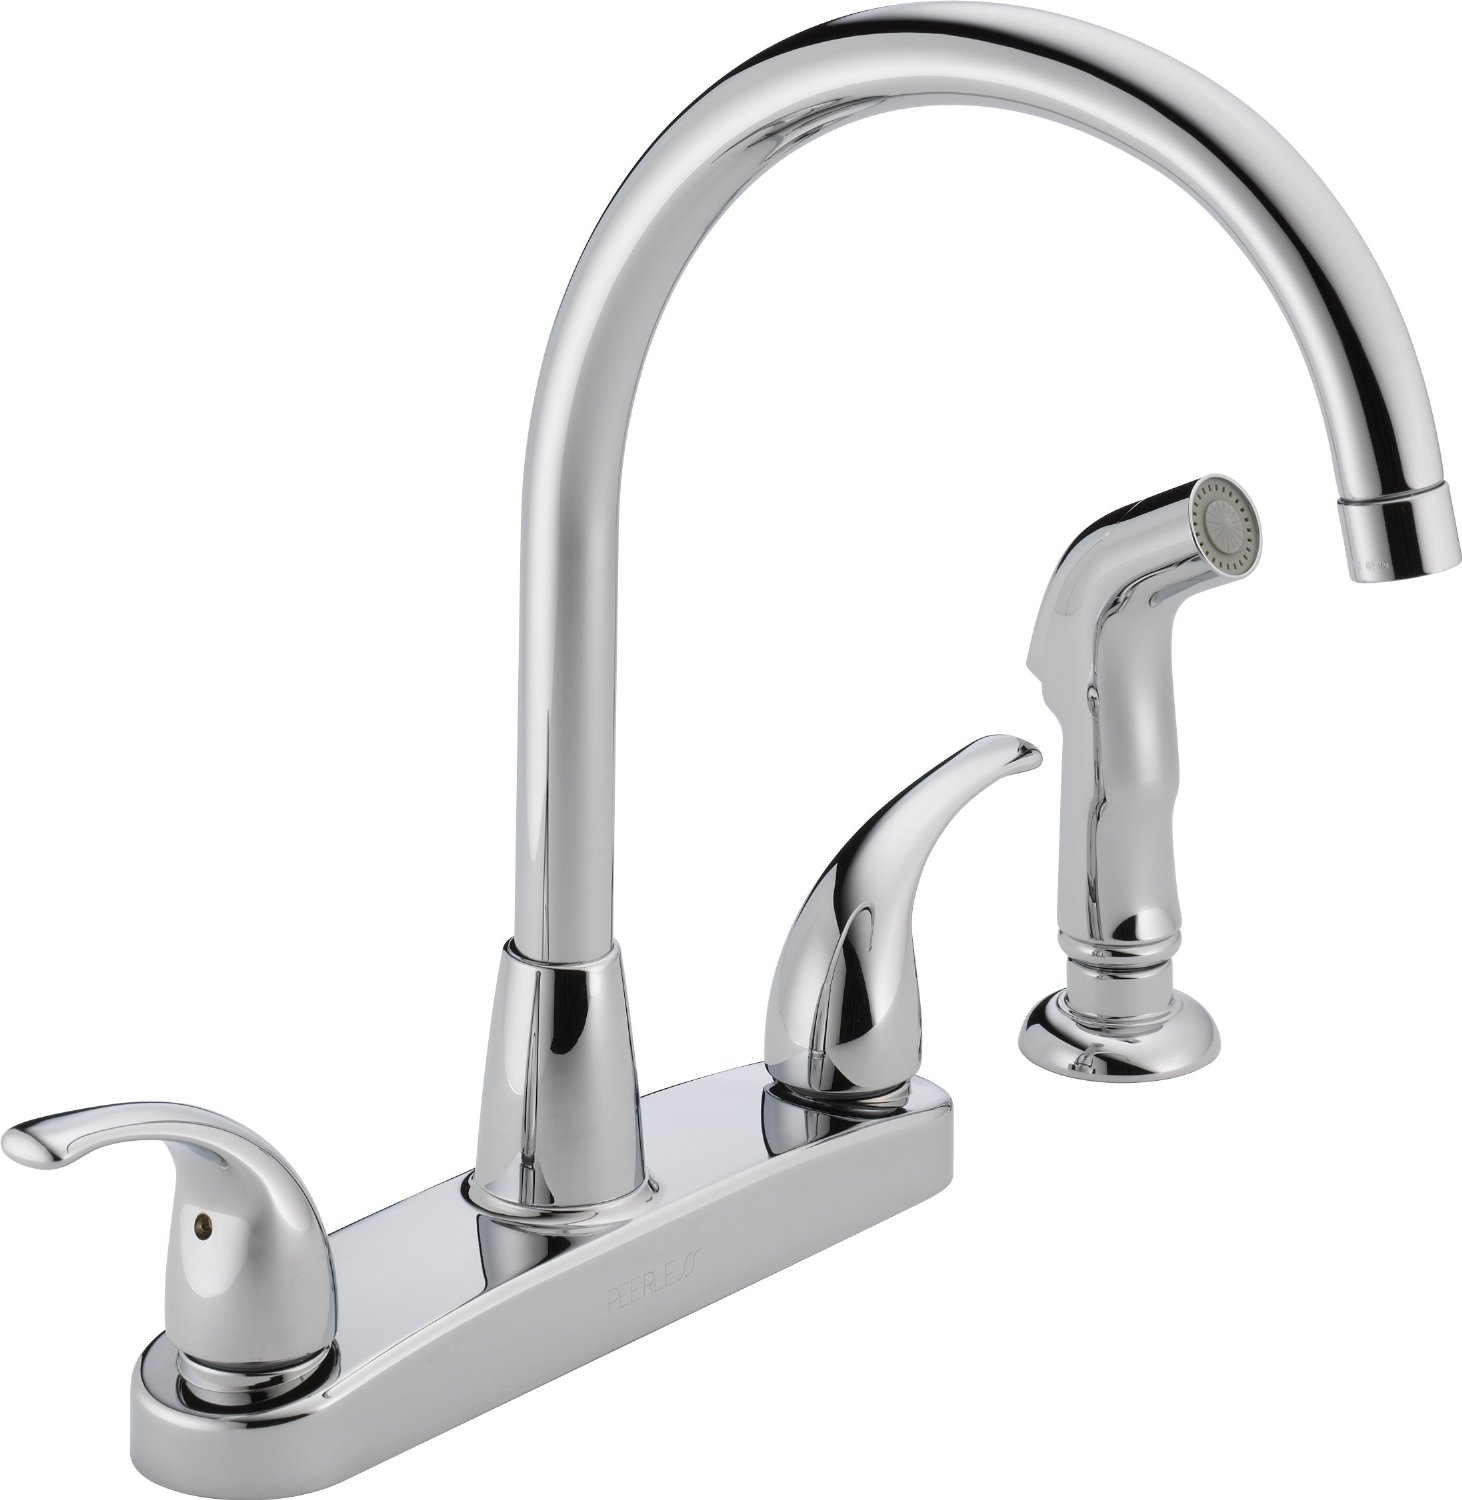 The Best Kitchen Sinks And Faucets